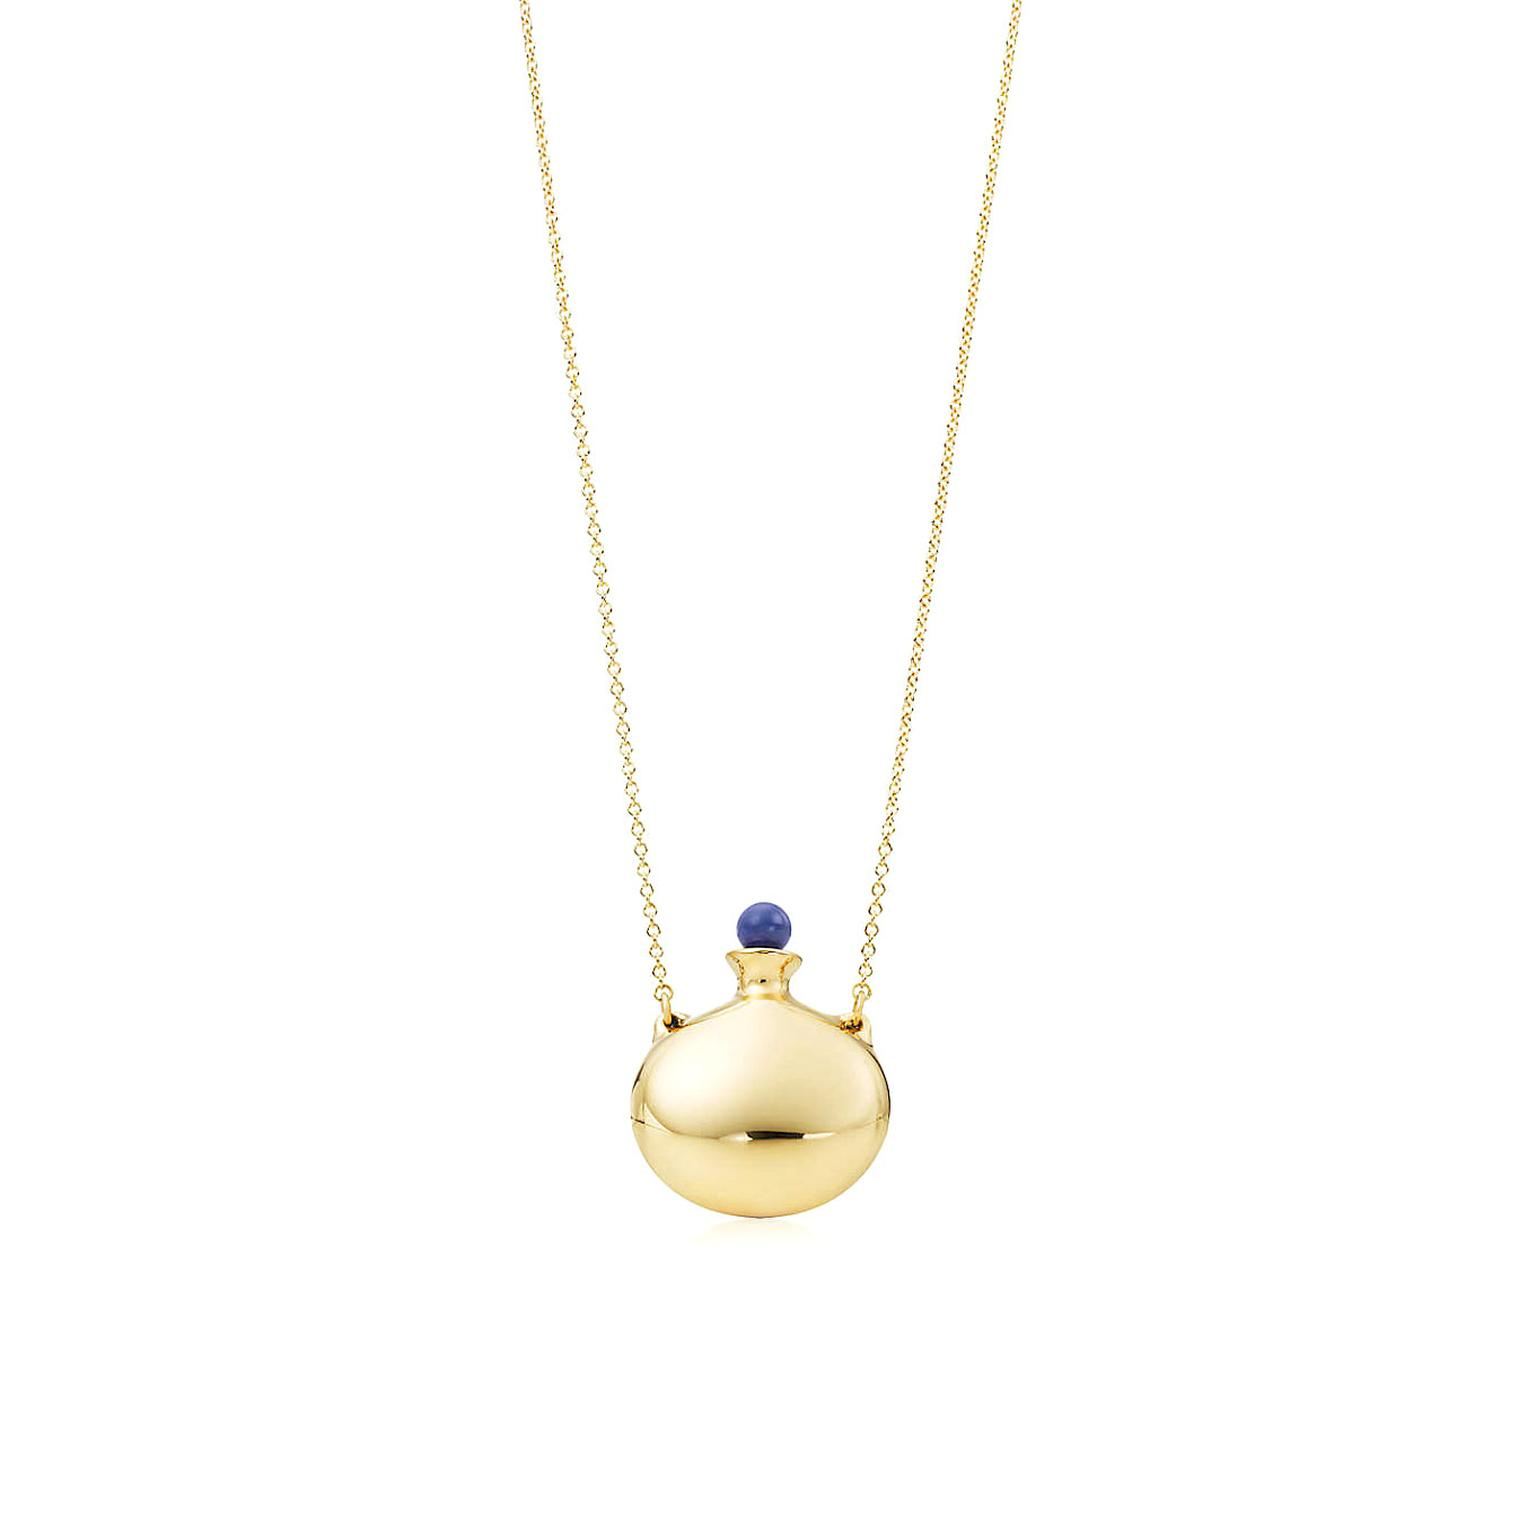 Elsa Peretti yellow gold Bottle pendant with lapis lazuli stopper